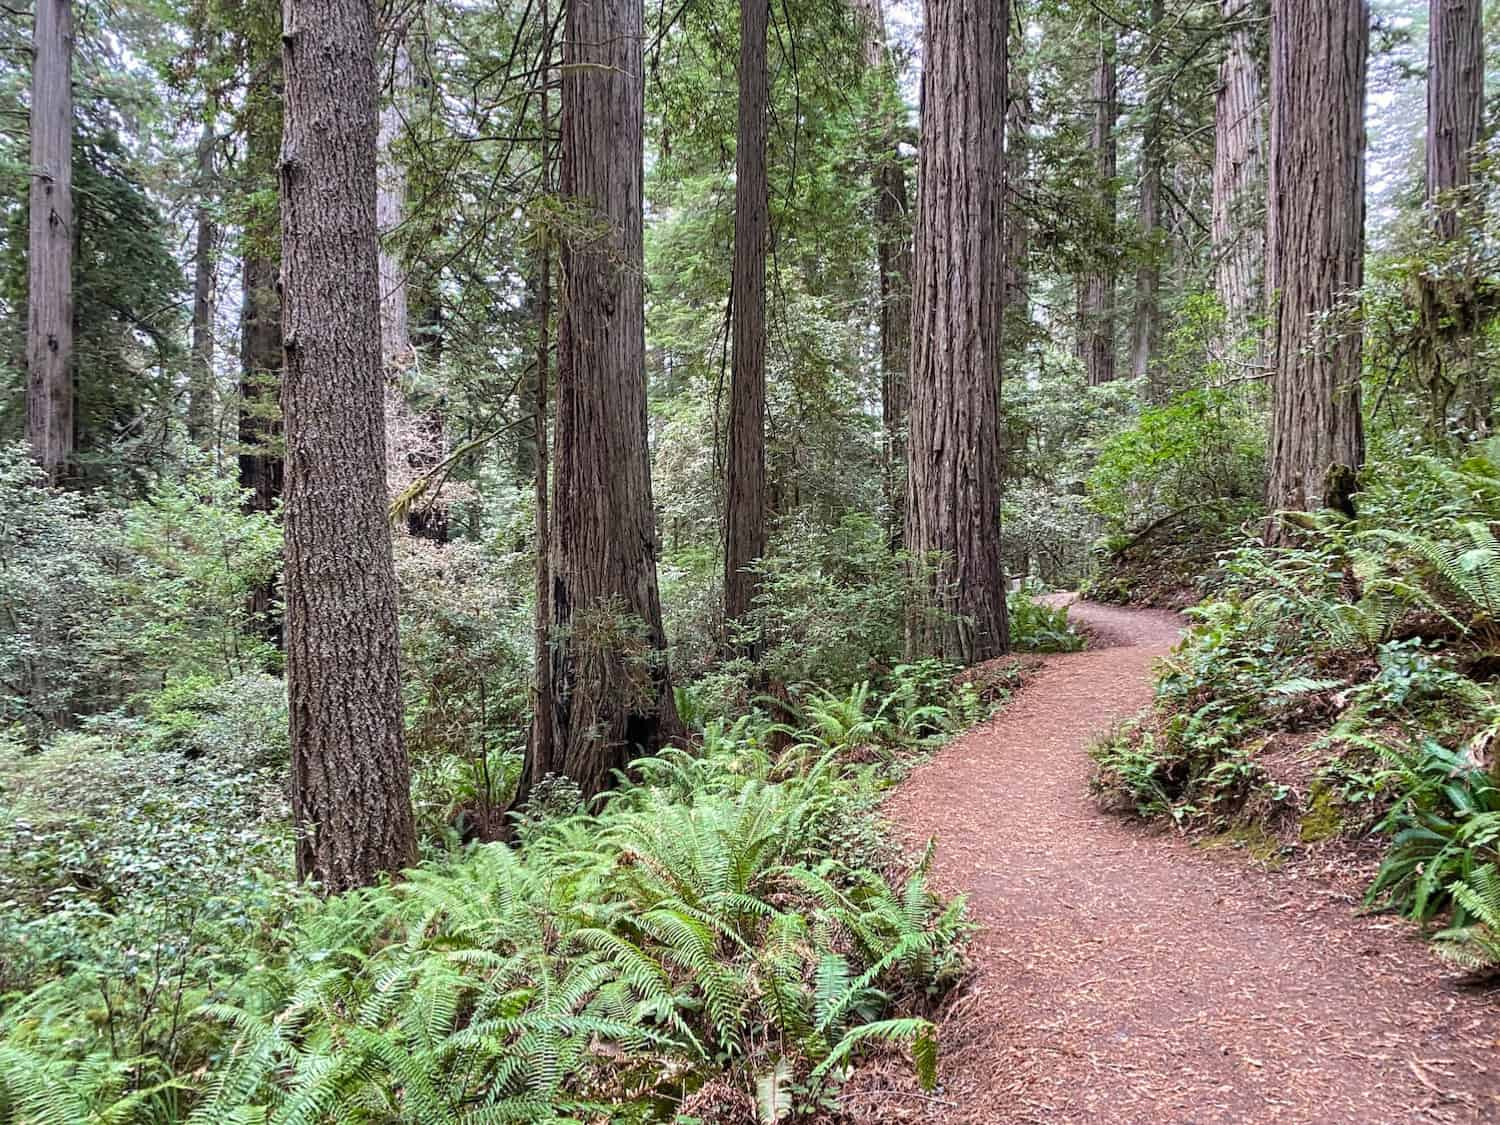 3 Days in Crescent City - Redwoods Hiking